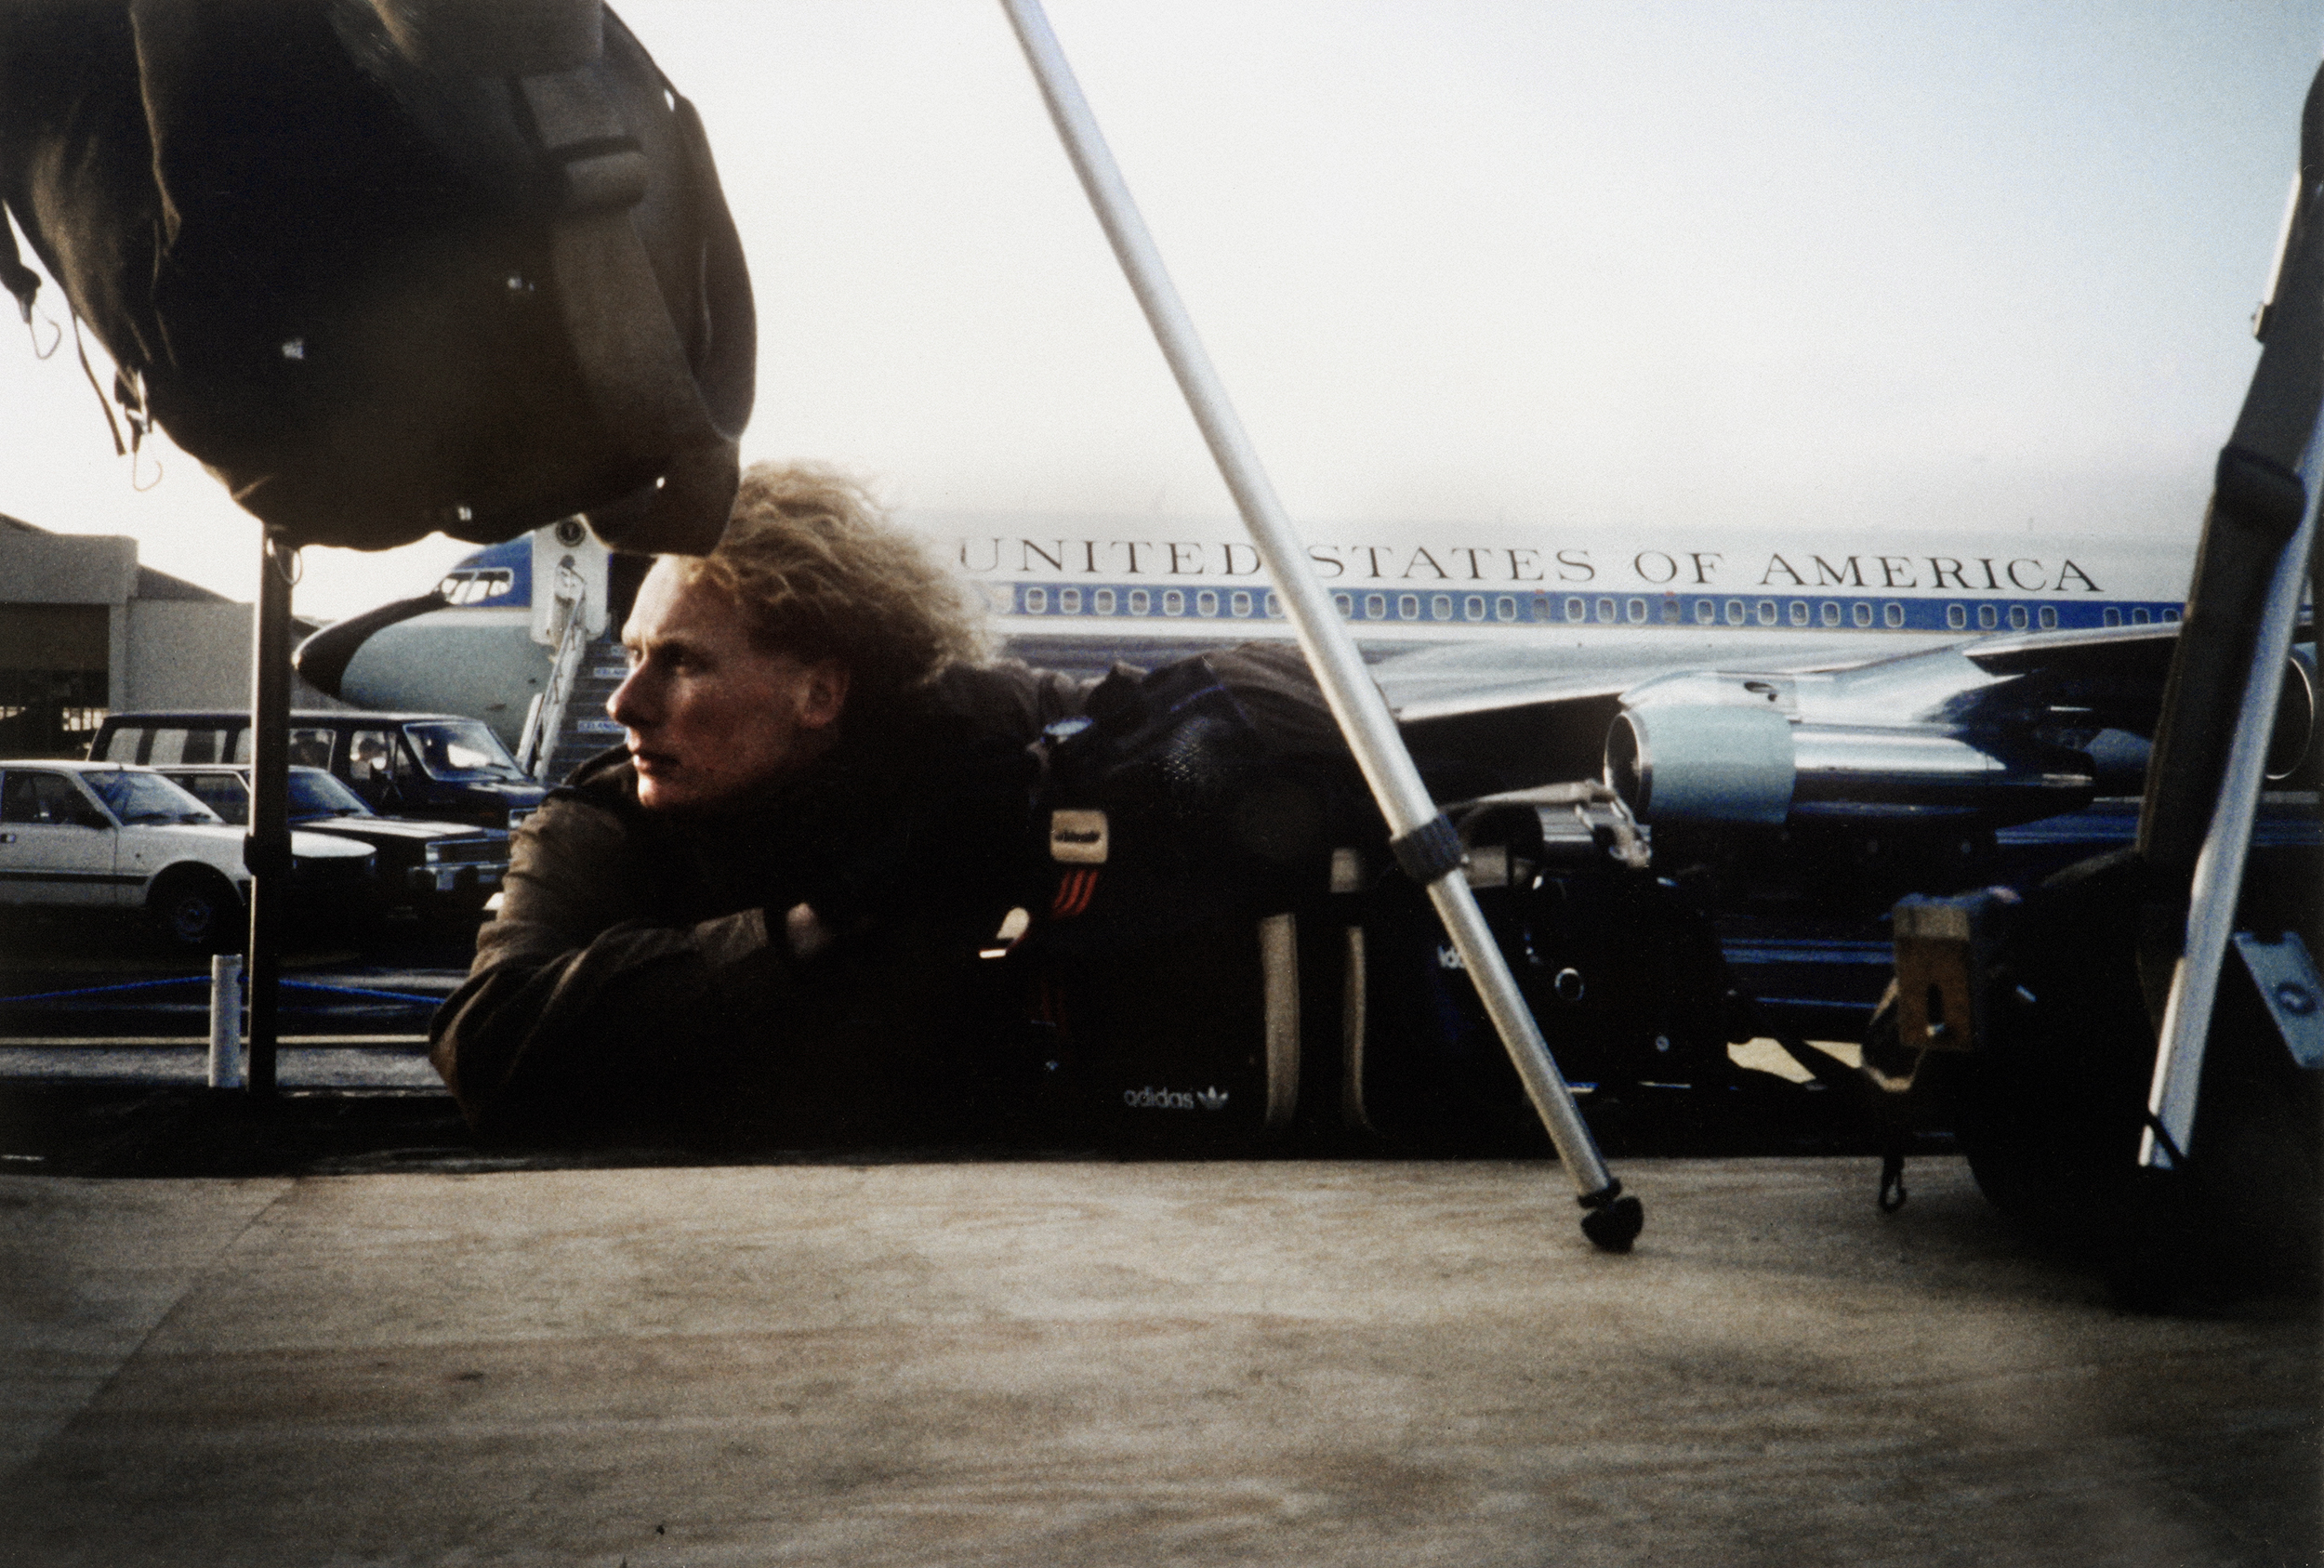 242.PerFronth.AirforceOne.Island.1988.noise.2500px.b.jpg